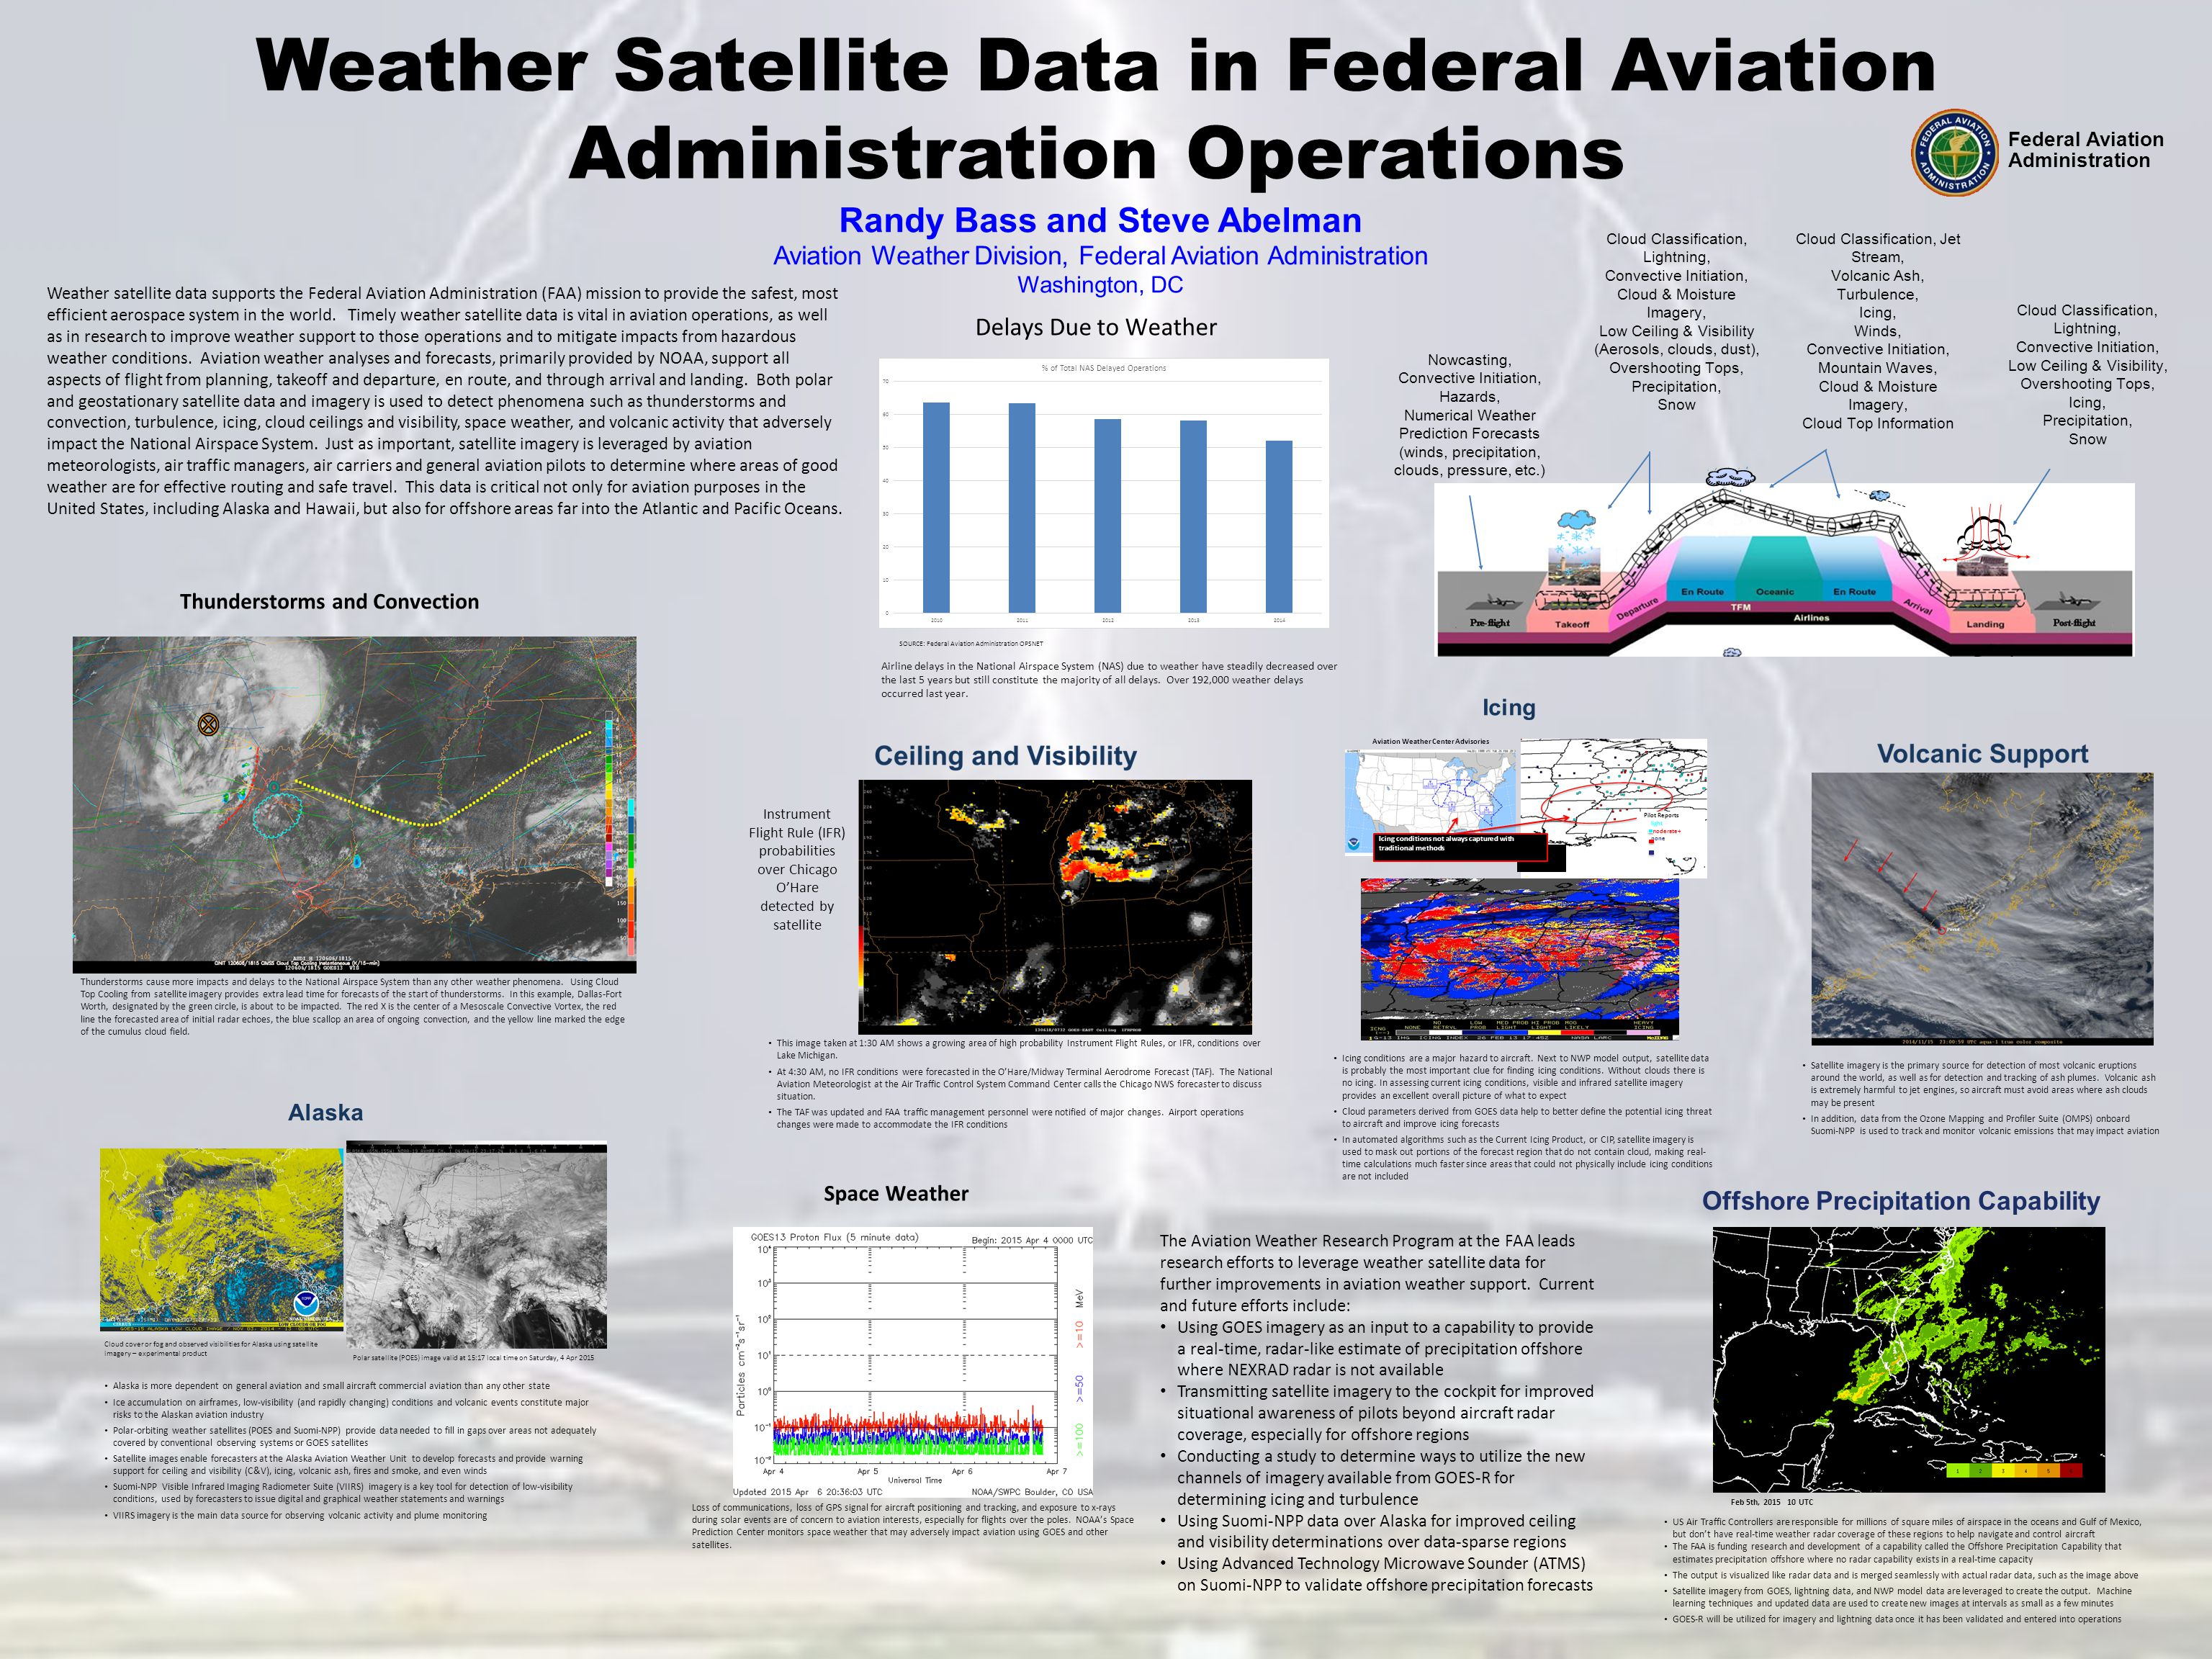 Cloud Classification, Lightning, Convective Initiation, Cloud & Moisture Imagery, Low Ceiling & Visibility (Aerosols, clouds, dust), Overshooting Tops, Precipitation, Snow Cloud Classification, Jet Stream, Volcanic Ash, Turbulence, Icing, Winds, Convective Initiation, Mountain Waves, Cloud & Moisture Imagery, Cloud Top Information Cloud Classification, Lightning, Convective Initiation, Low Ceiling & Visibility, Overshooting Tops, Icing, Precipitation, Snow Nowcasting, Convective Initiation, Hazards, Numerical Weather Prediction Forecasts (winds, precipitation, clouds, pressure, etc.) Weather Satellite Data in Federal Aviation Administration Operations Airline delays in the National Airspace System (NAS) due to weather have steadily decreased over the last 5 years but still constitute the majority of all delays.